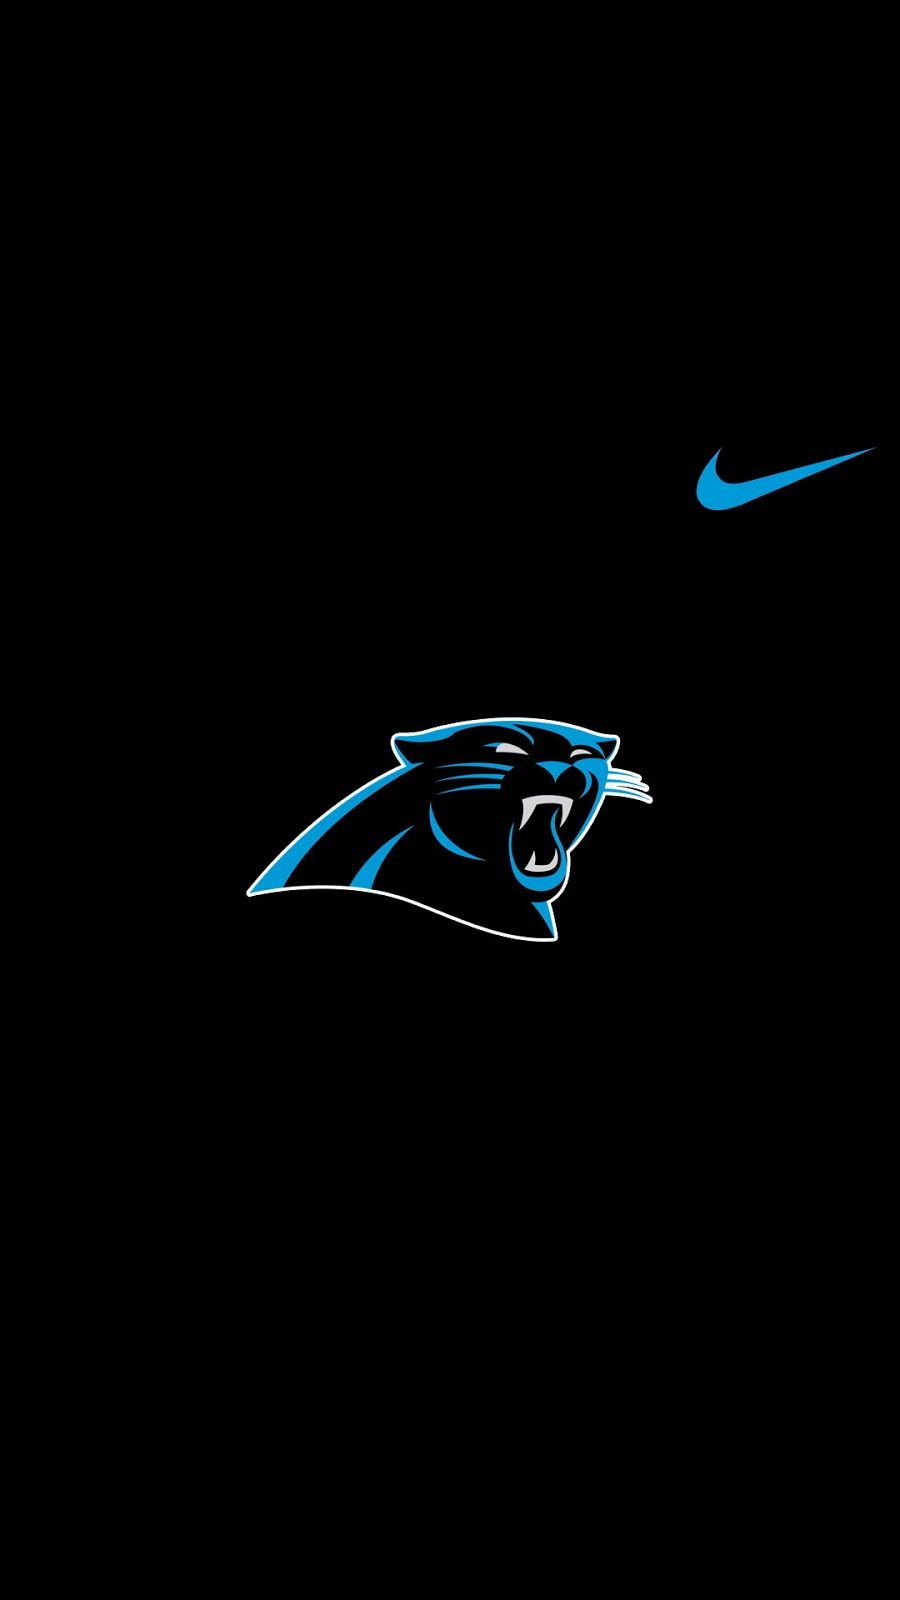 Nike Logo Hd Wallpapers For Iphone X Iphone Xr Iphone 11 Etc Andriblog001 In 2020 Carolina Panthers Wallpaper Carolina Panthers Panthers